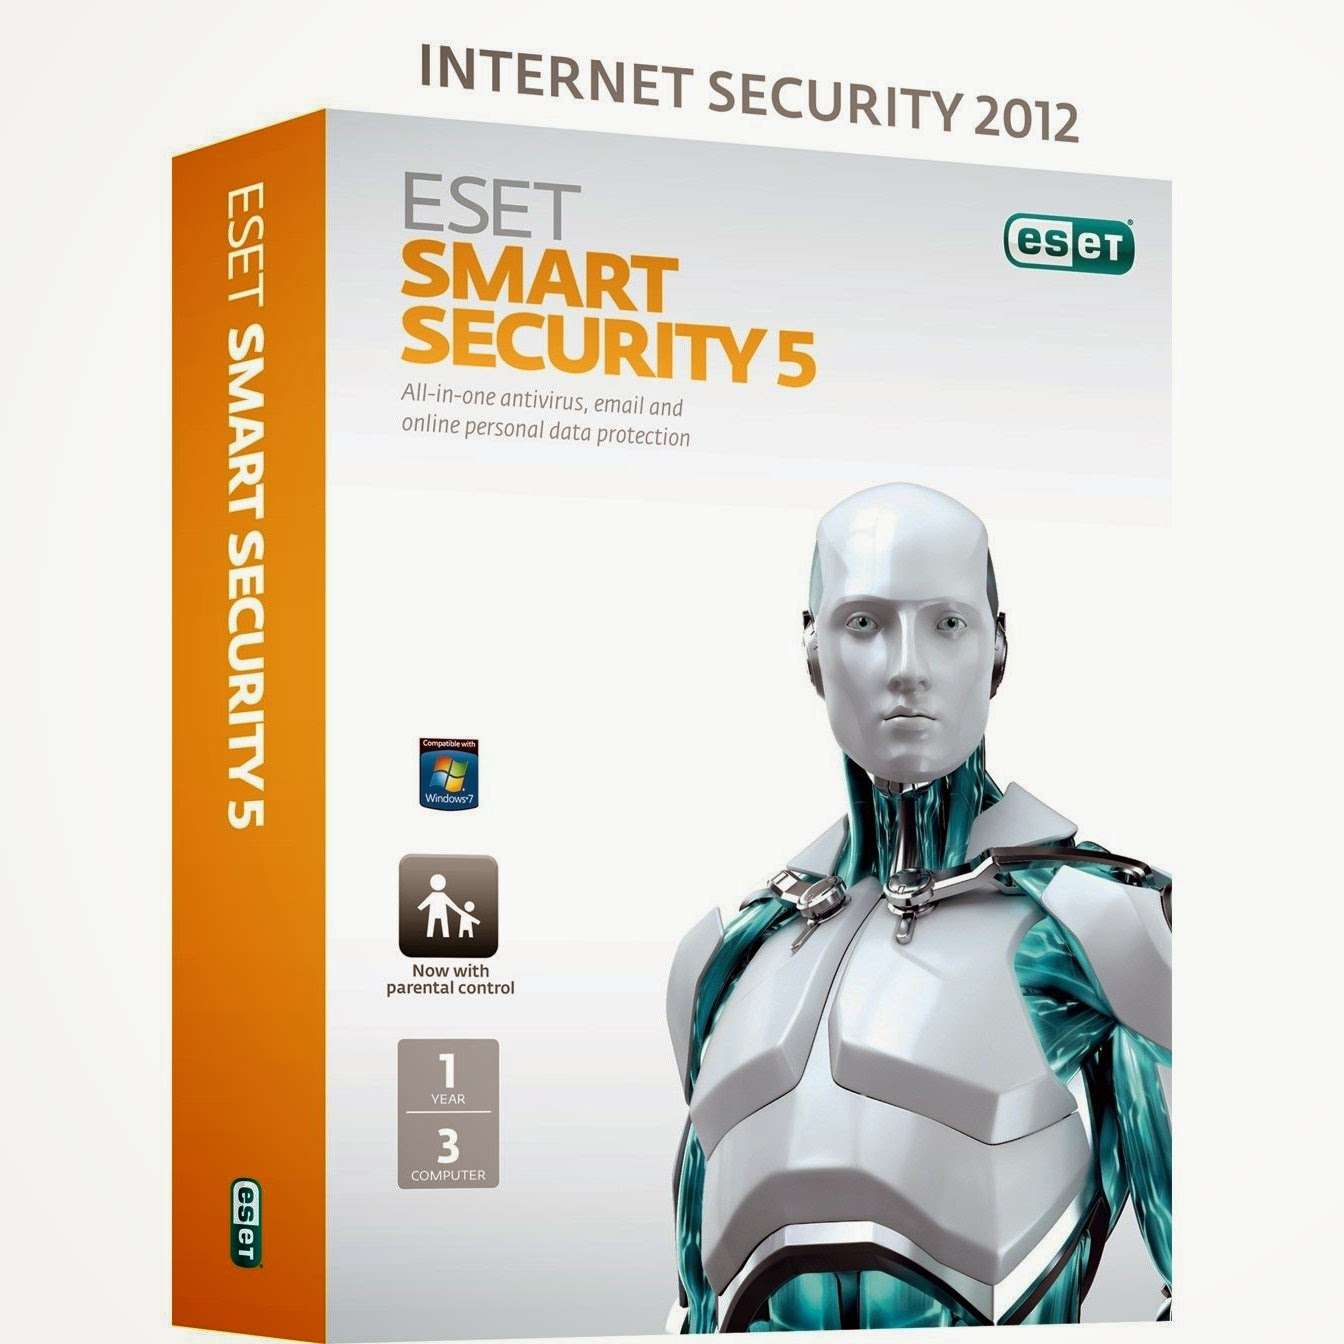 ESET smart Security 6 Final Crack Full Version Free Download with. . Freet